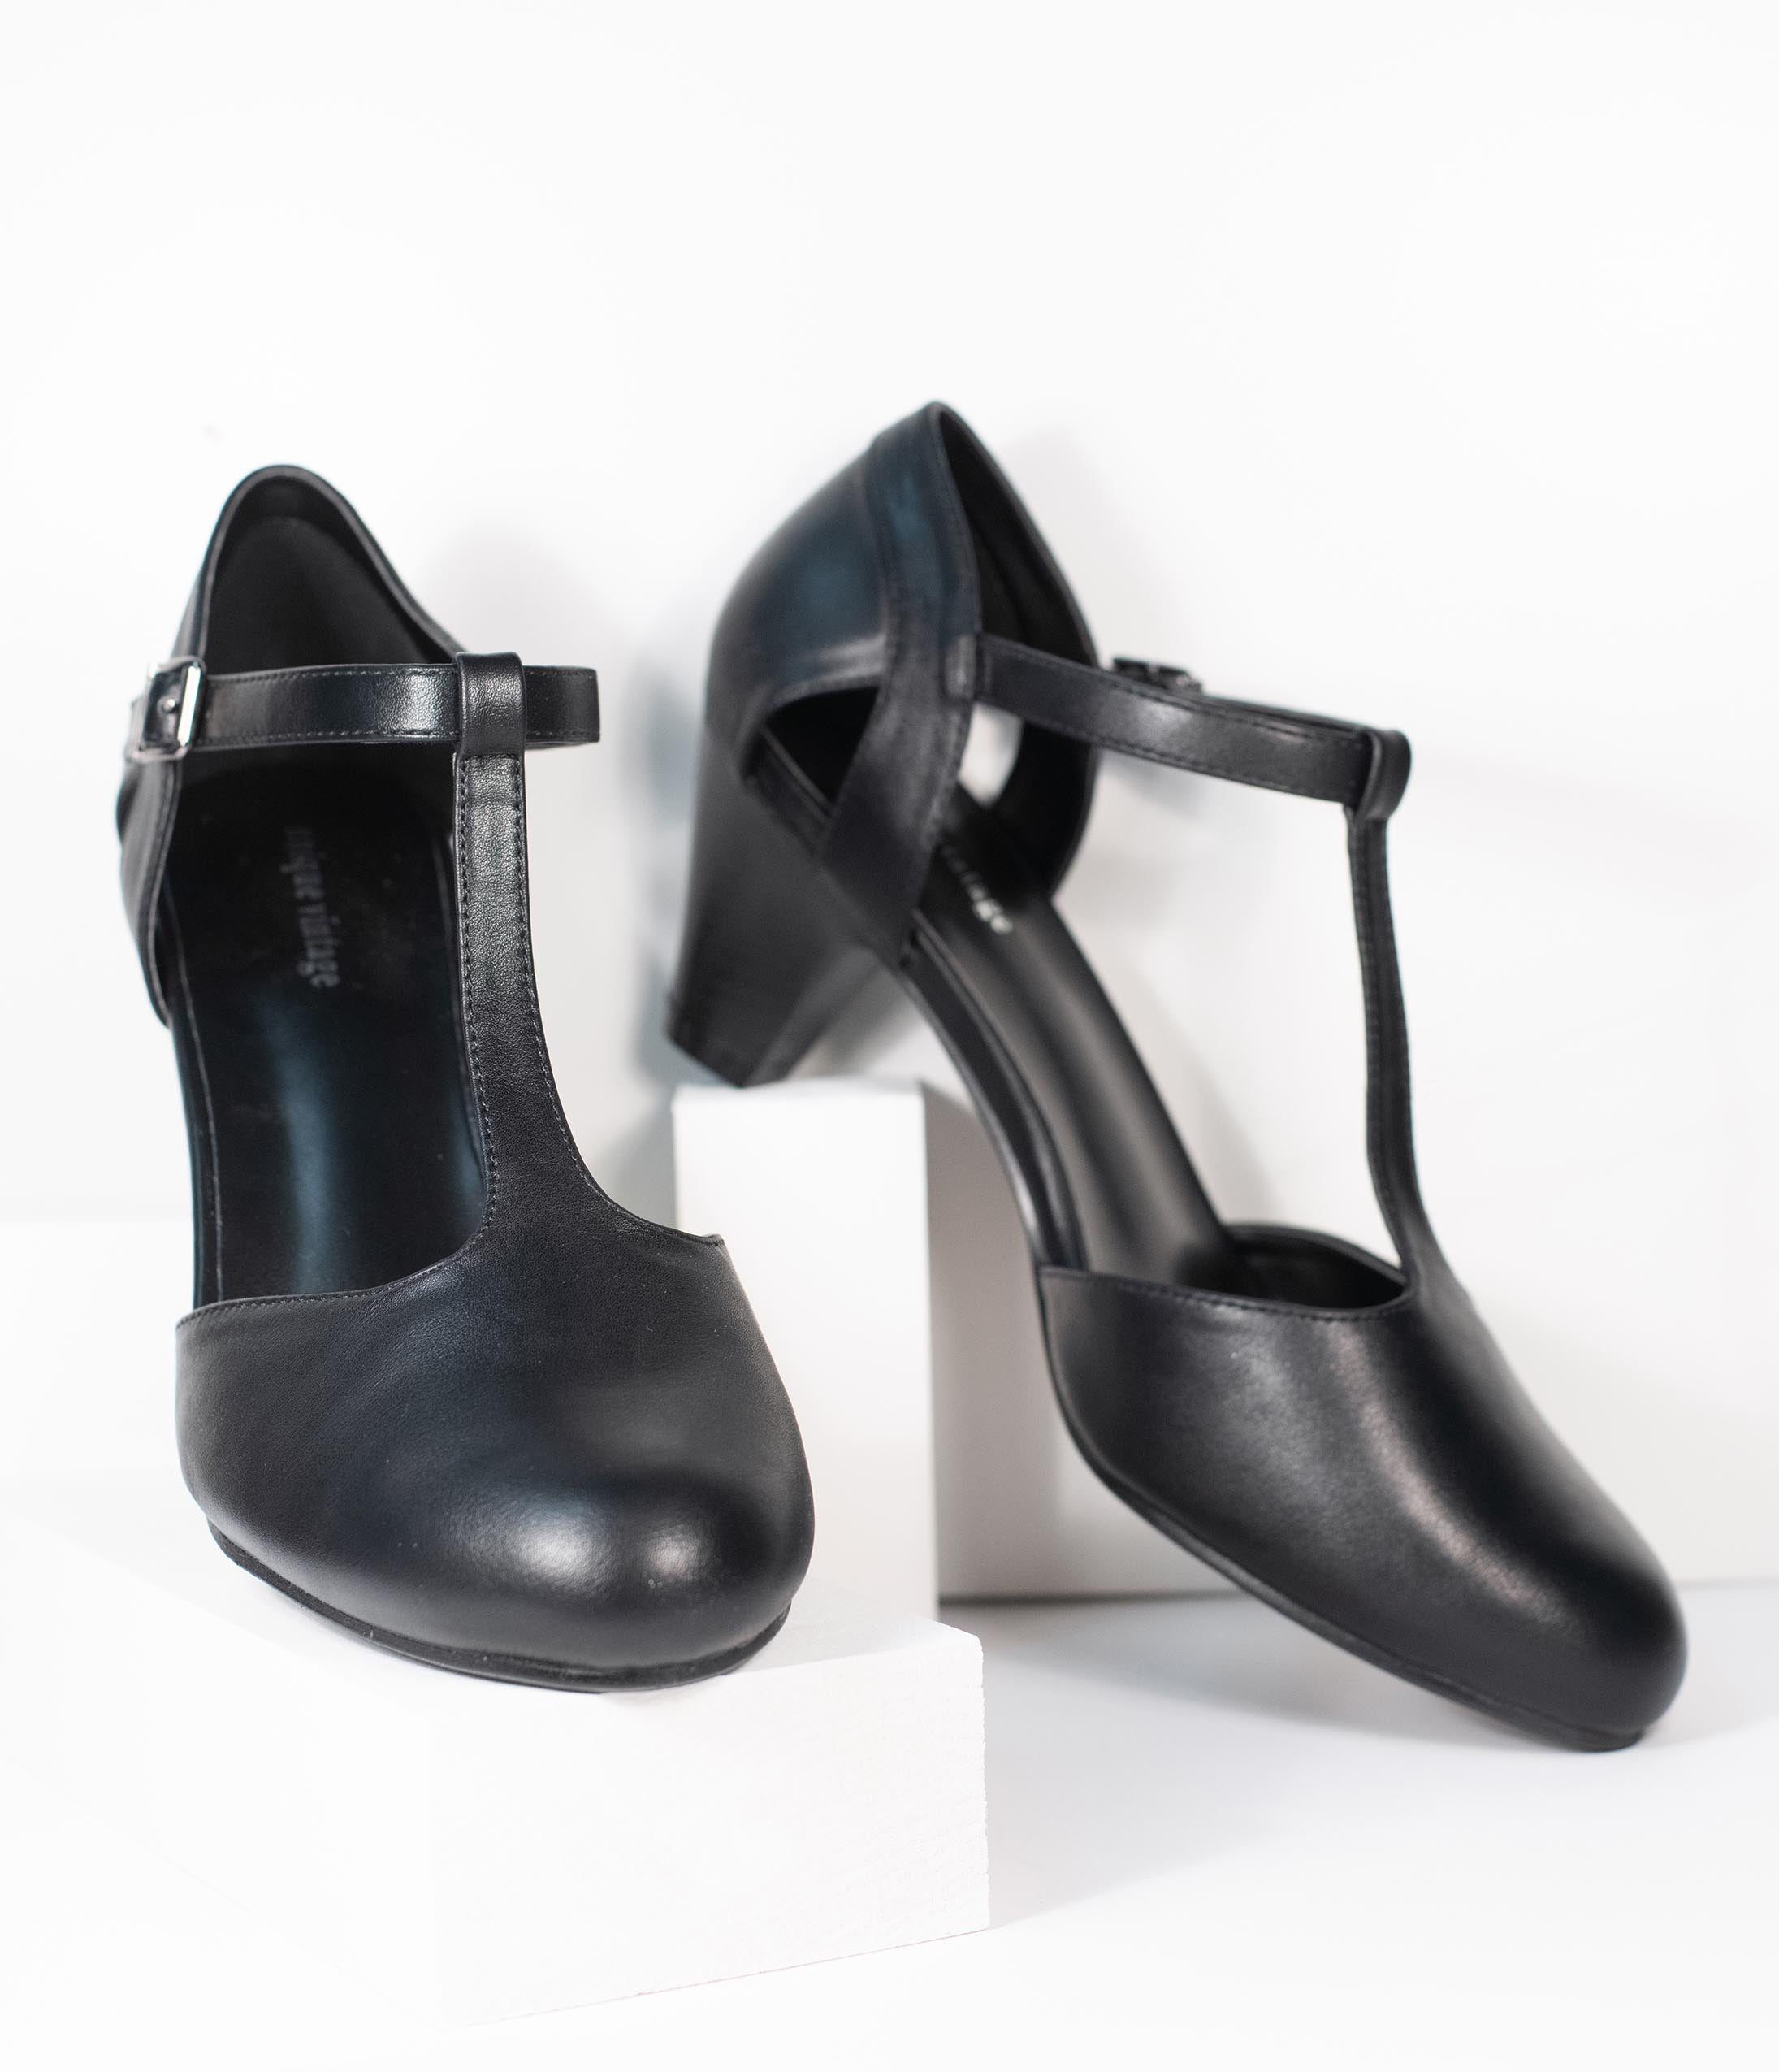 Women's 1920s Shoe Styles and History Unique Vintage Black Leatherette Closed Toe T-Strap Roxy Pumps $48.00 AT vintagedancer.com